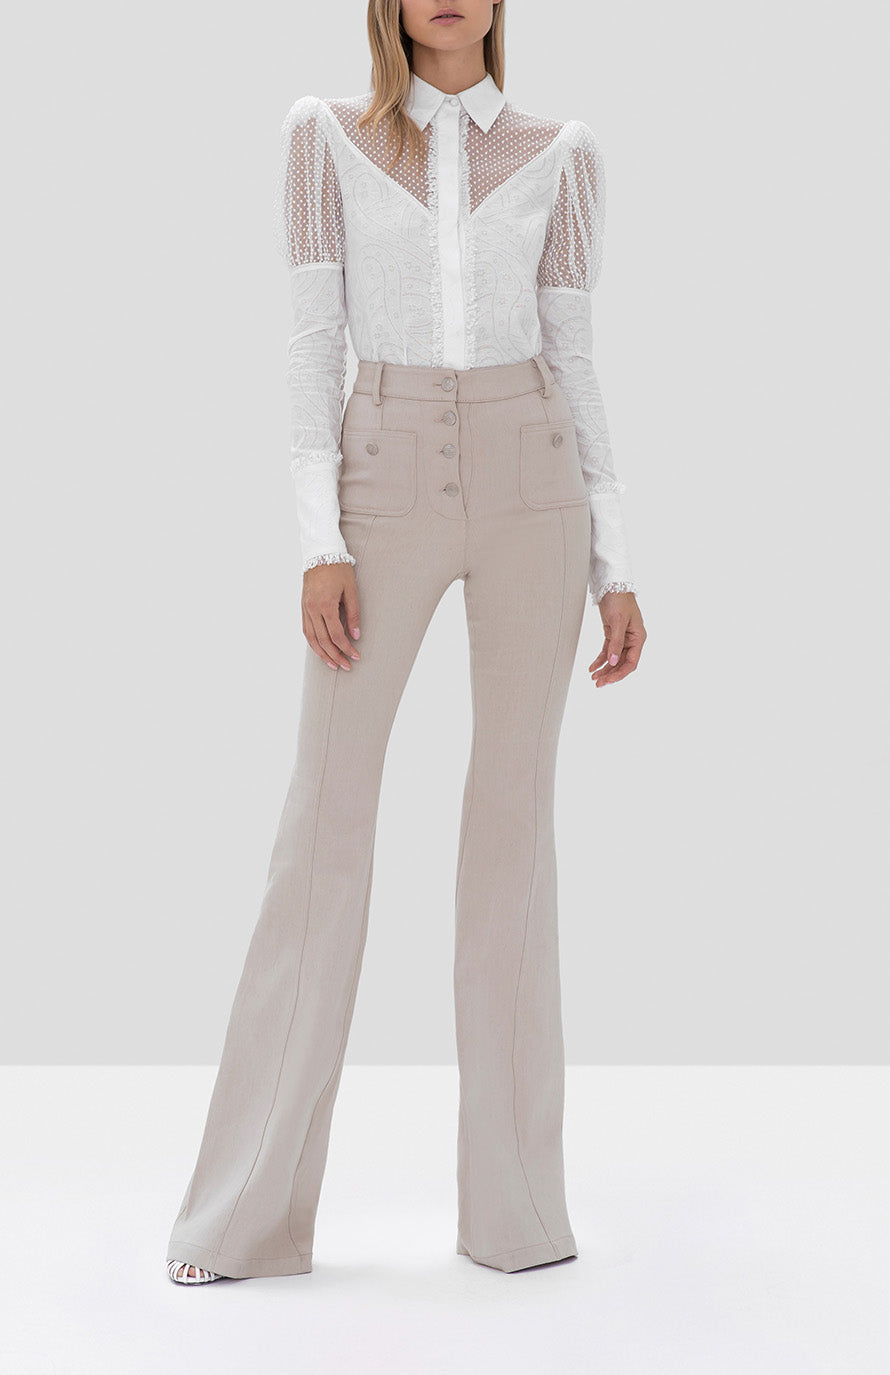 Alexis Virginia Top in White and Helene Pant in Oyster Denim from the Fall Winter 2019 Ready To Wear Collection - Rear View